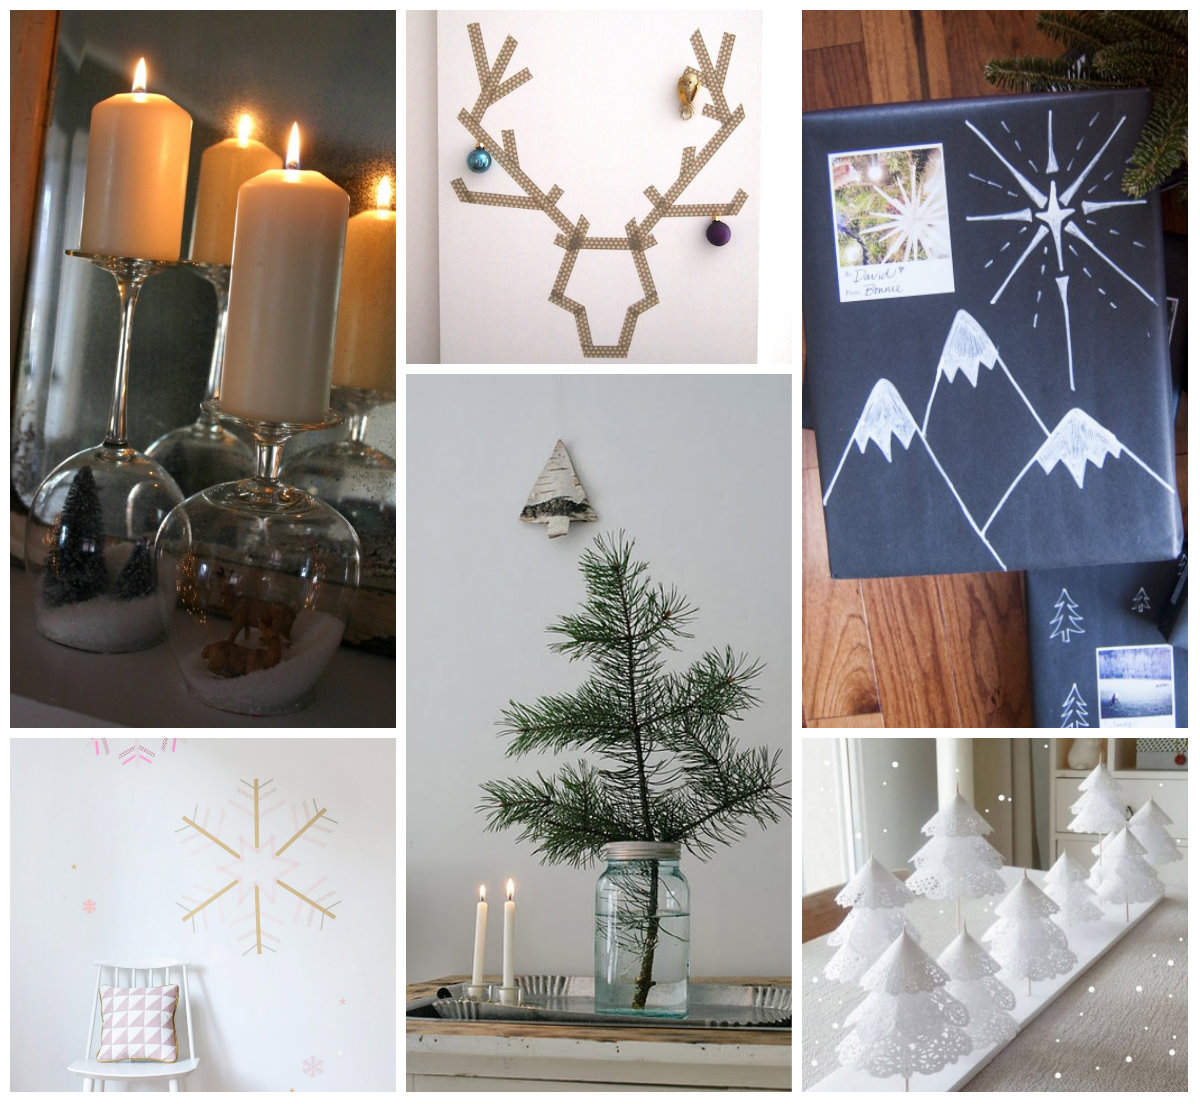 #A1602A Christmas Collage.jpg 5795 modele de decoration de noel a faire soi meme 1200x1104 px @ aertt.com